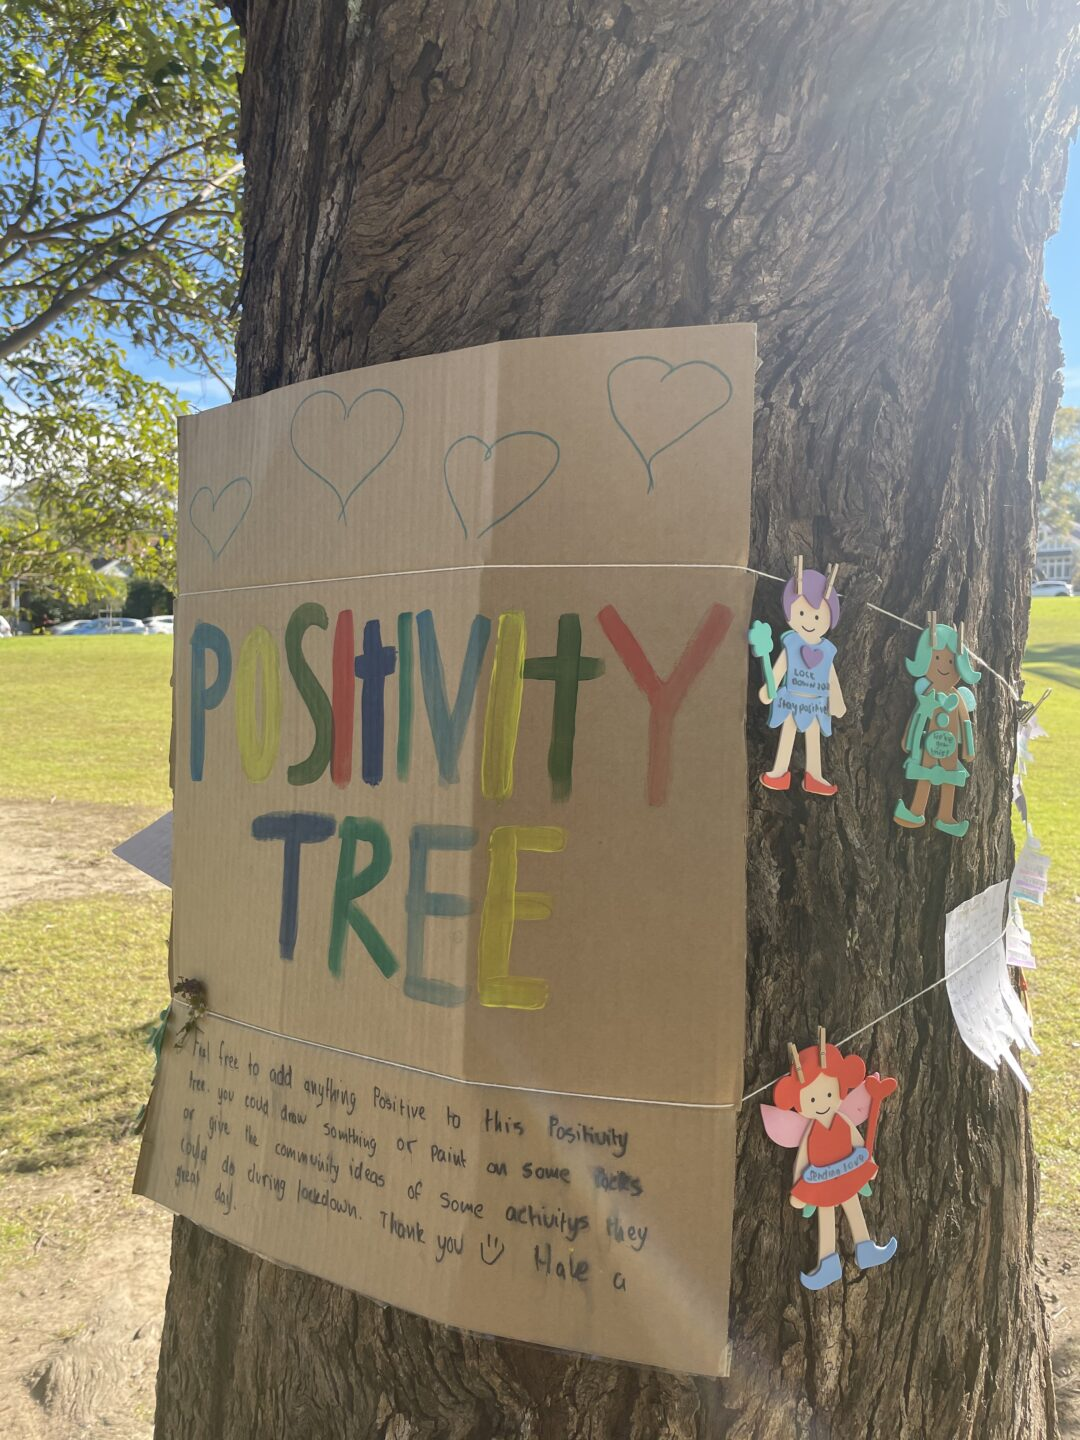 Sign tied to tree trunk 'Positivity Tree'.